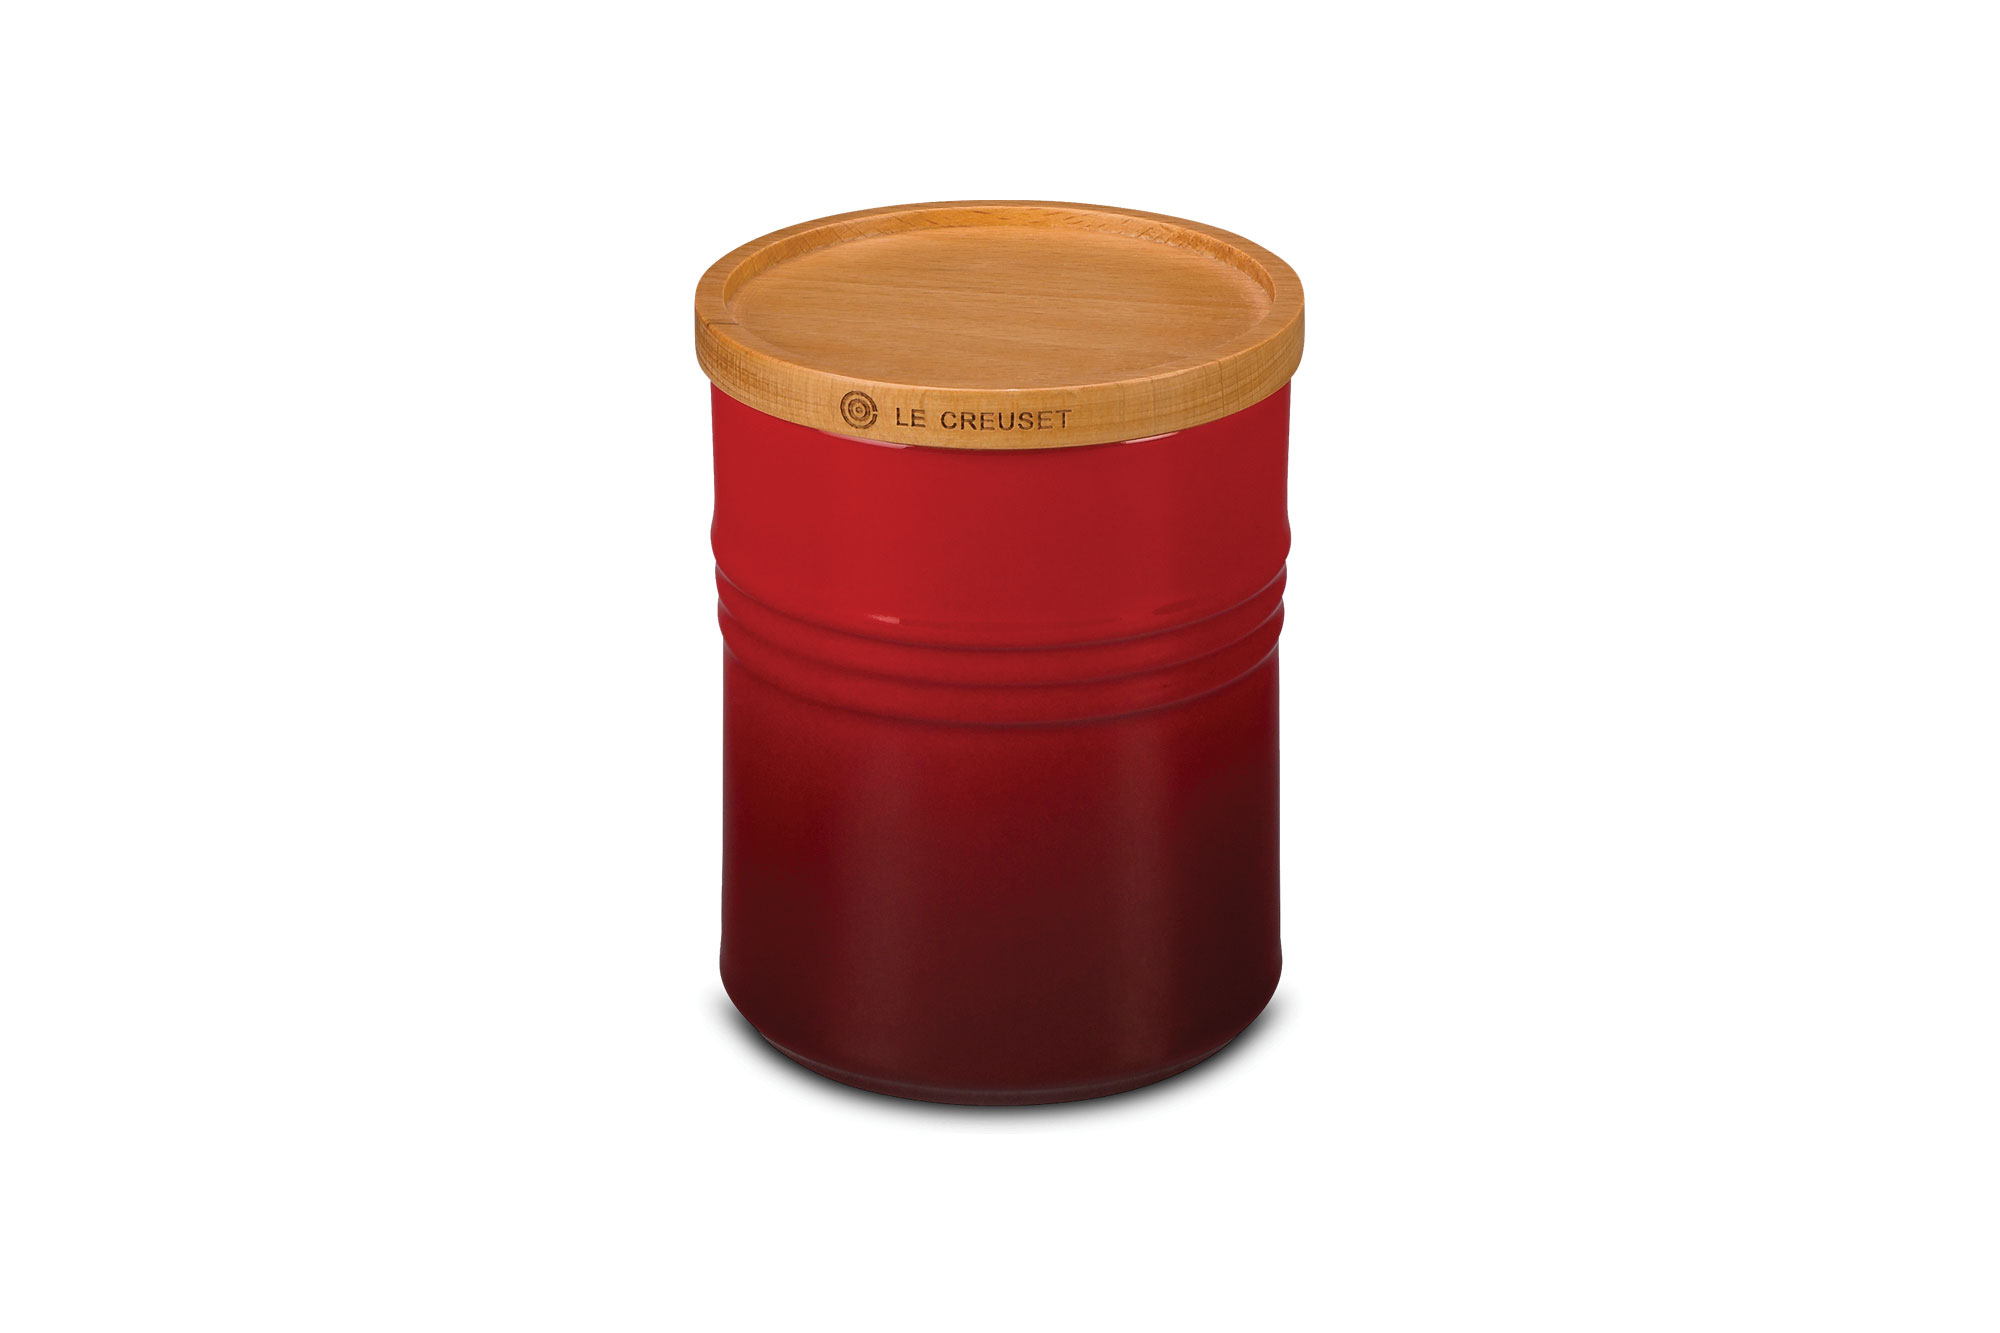 Le Creuset Stoneware 22 Oz Canister With Wood Lid Cherry